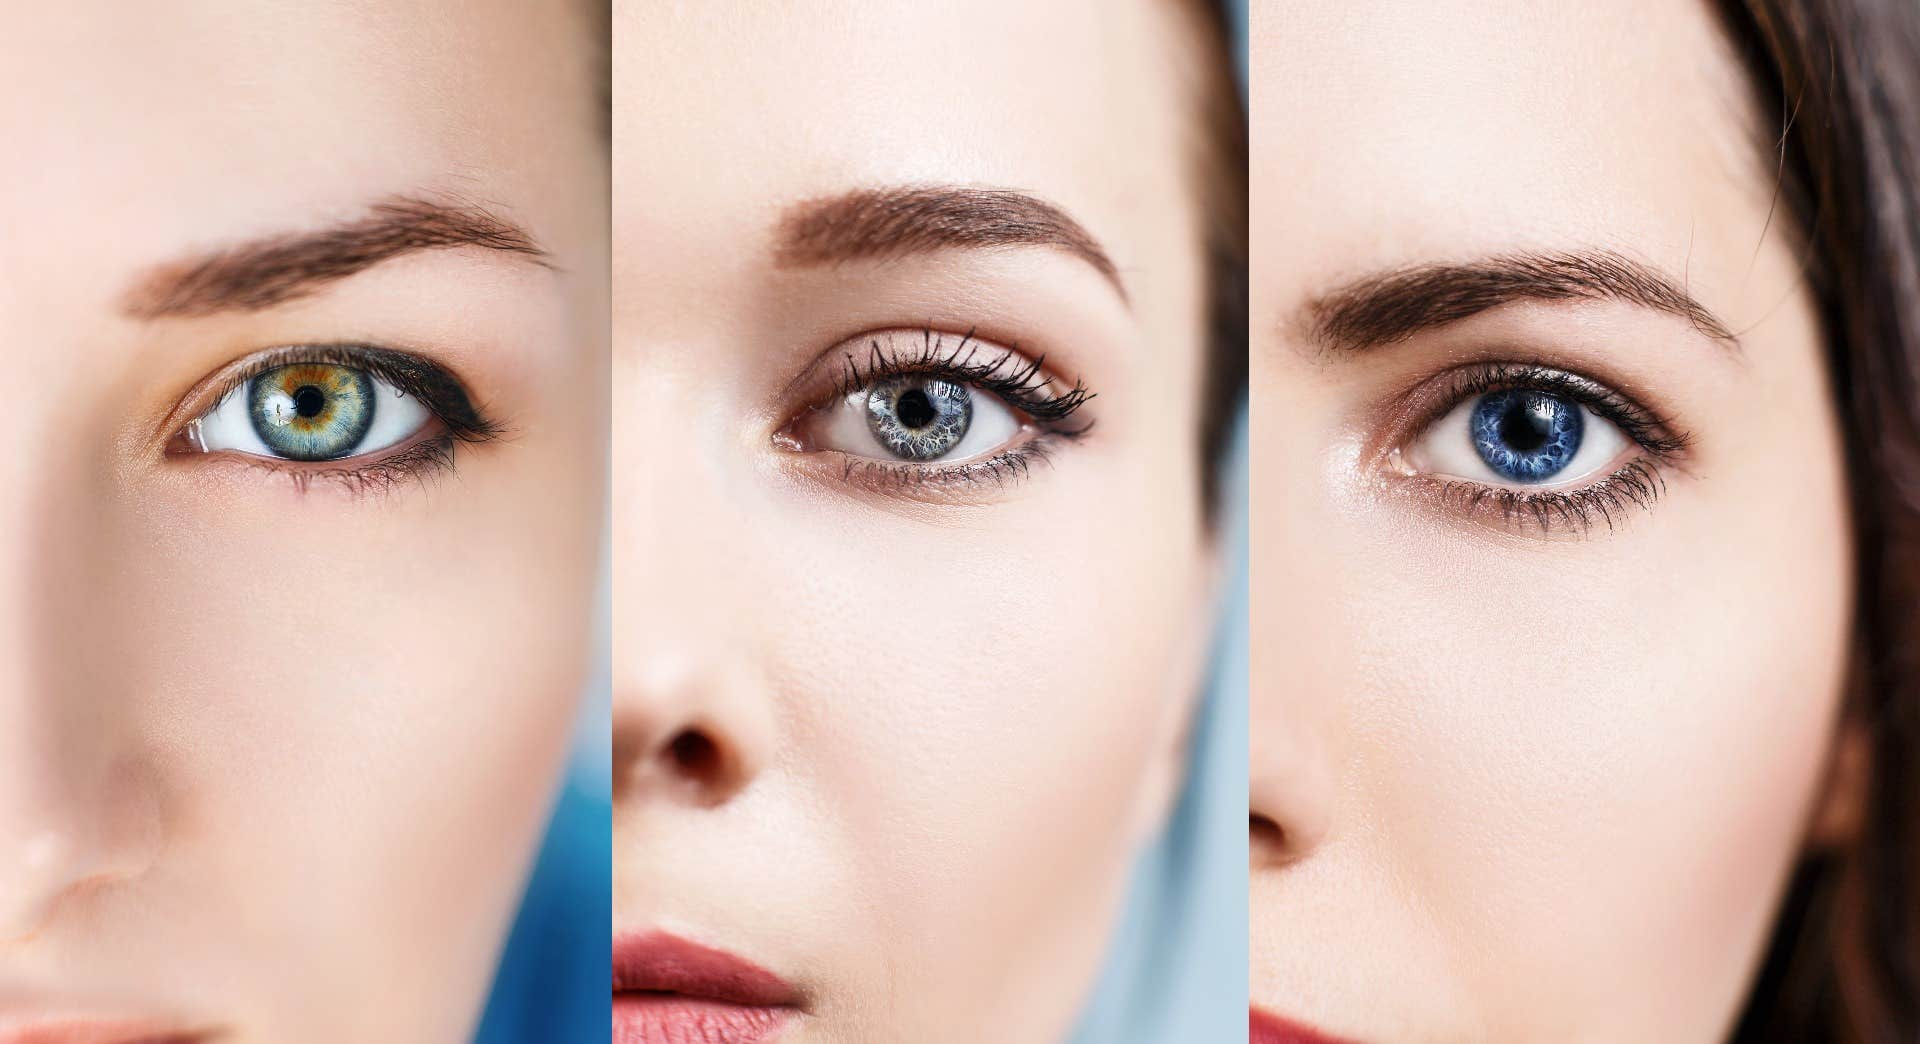 Buy The Best Frames For Your Eye Color and Skin Tone